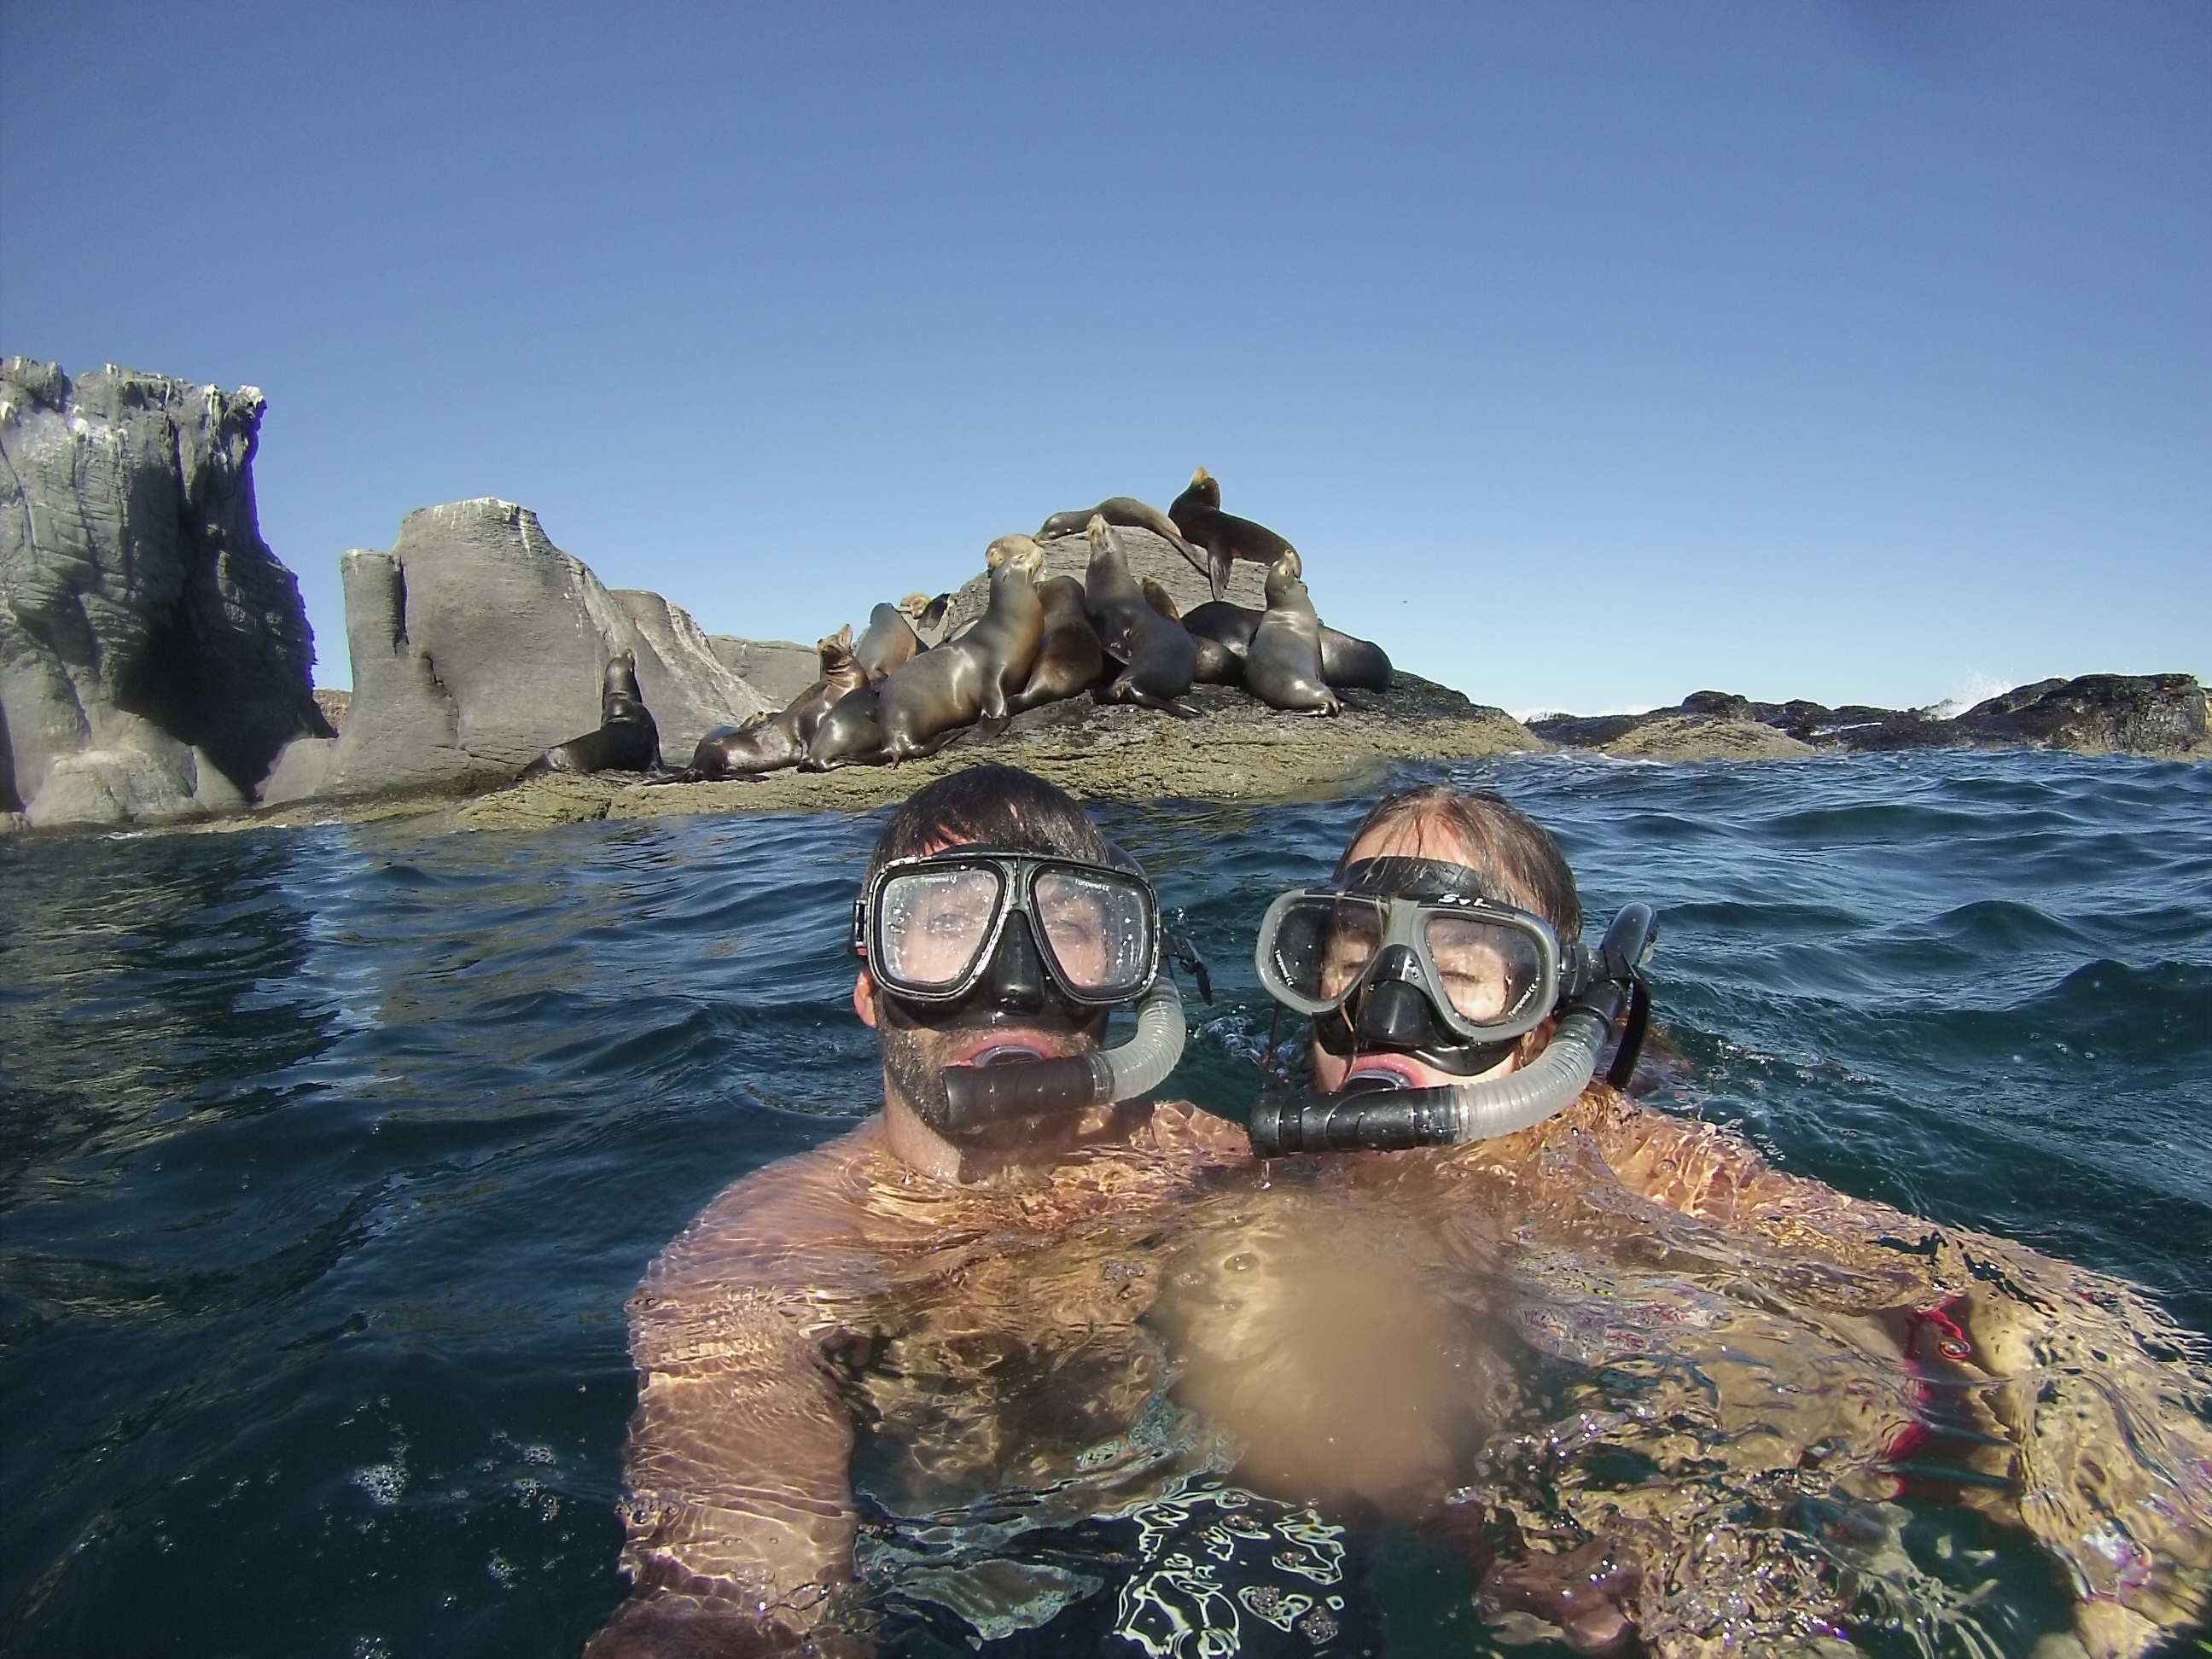 Snorkeling with Sea Lions at Coronado Island, Loreto National Marine Park